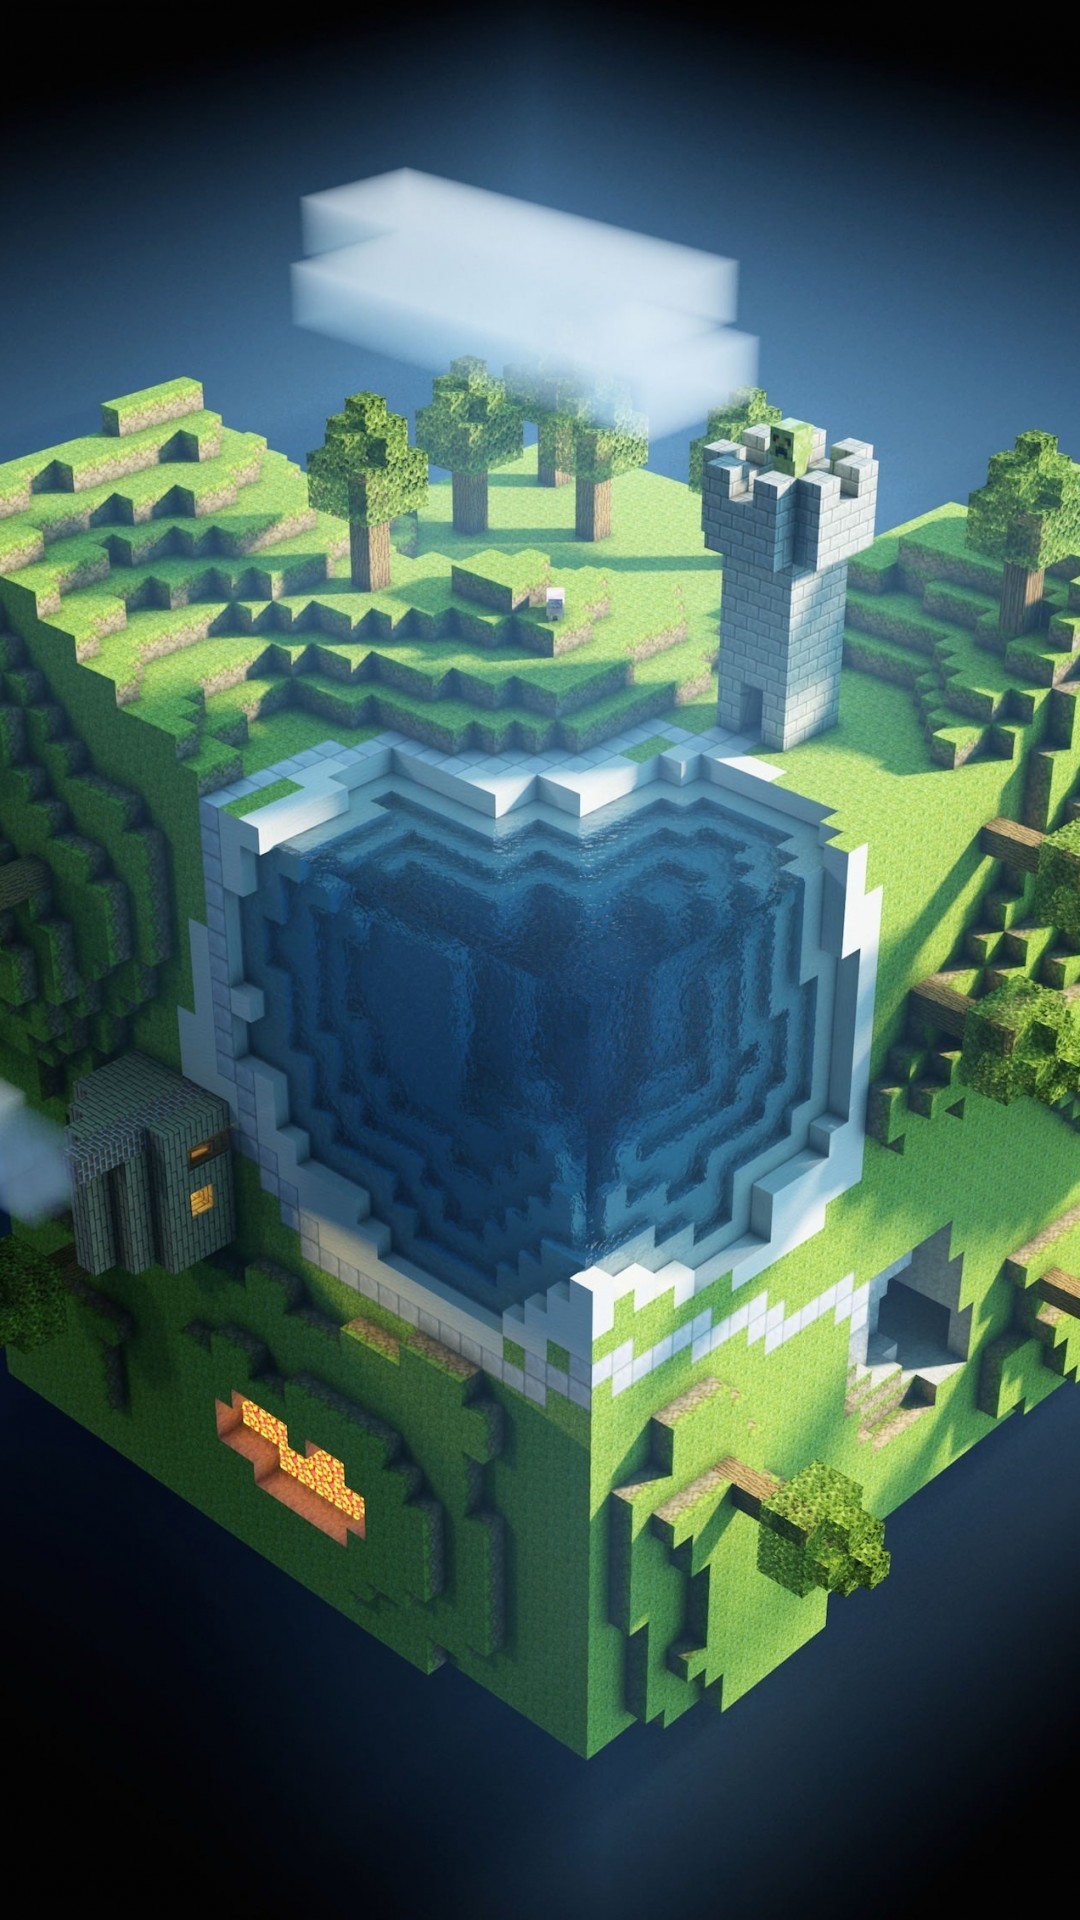 Planet Minecraft Wallpaper for SAMSUNG Galaxy S4